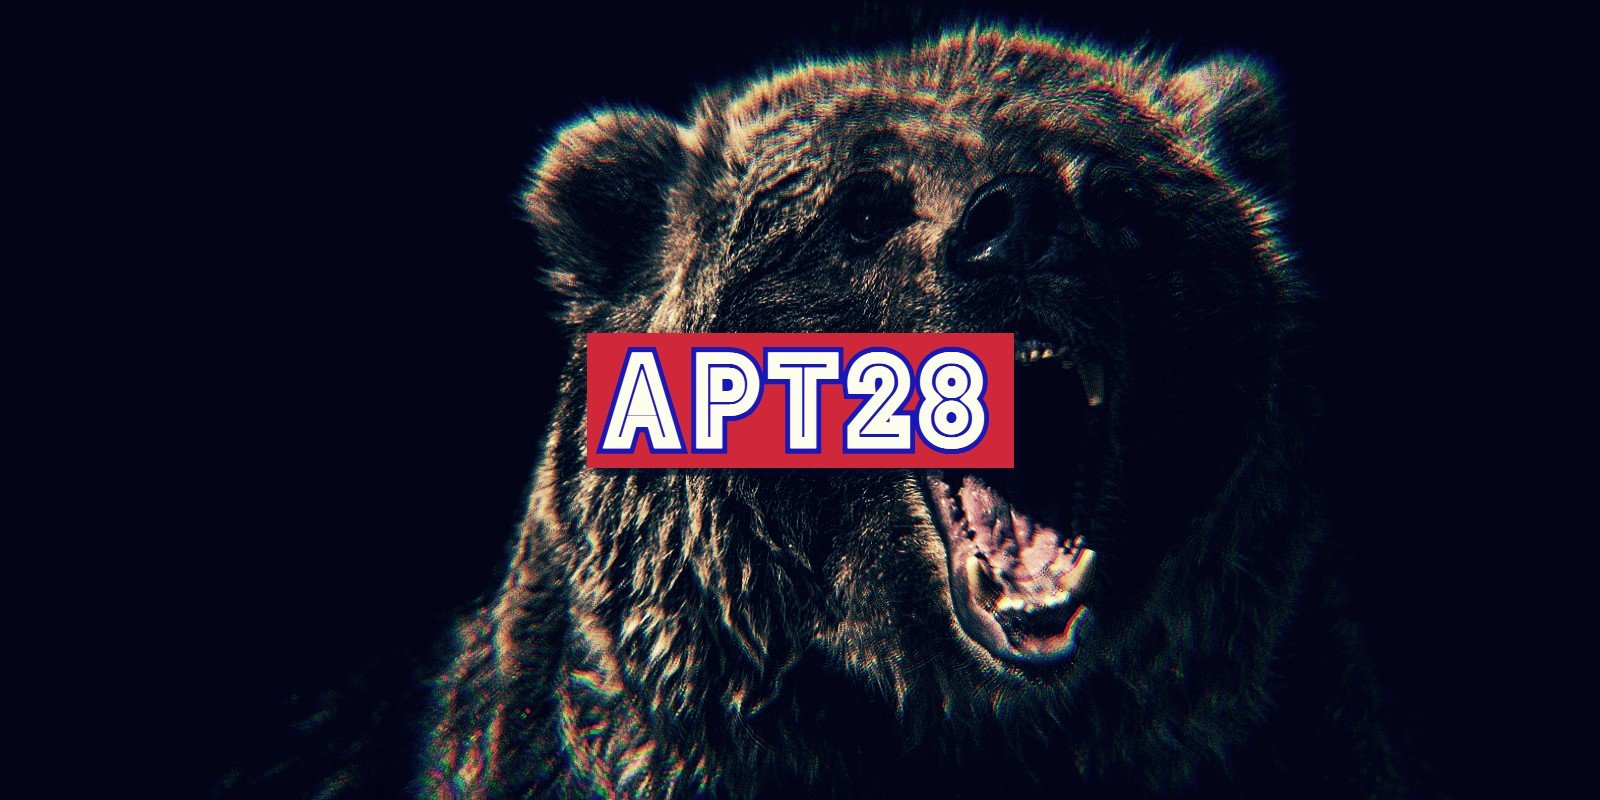 Norway: Russian APT28 state hackers likely behind Parliament attack